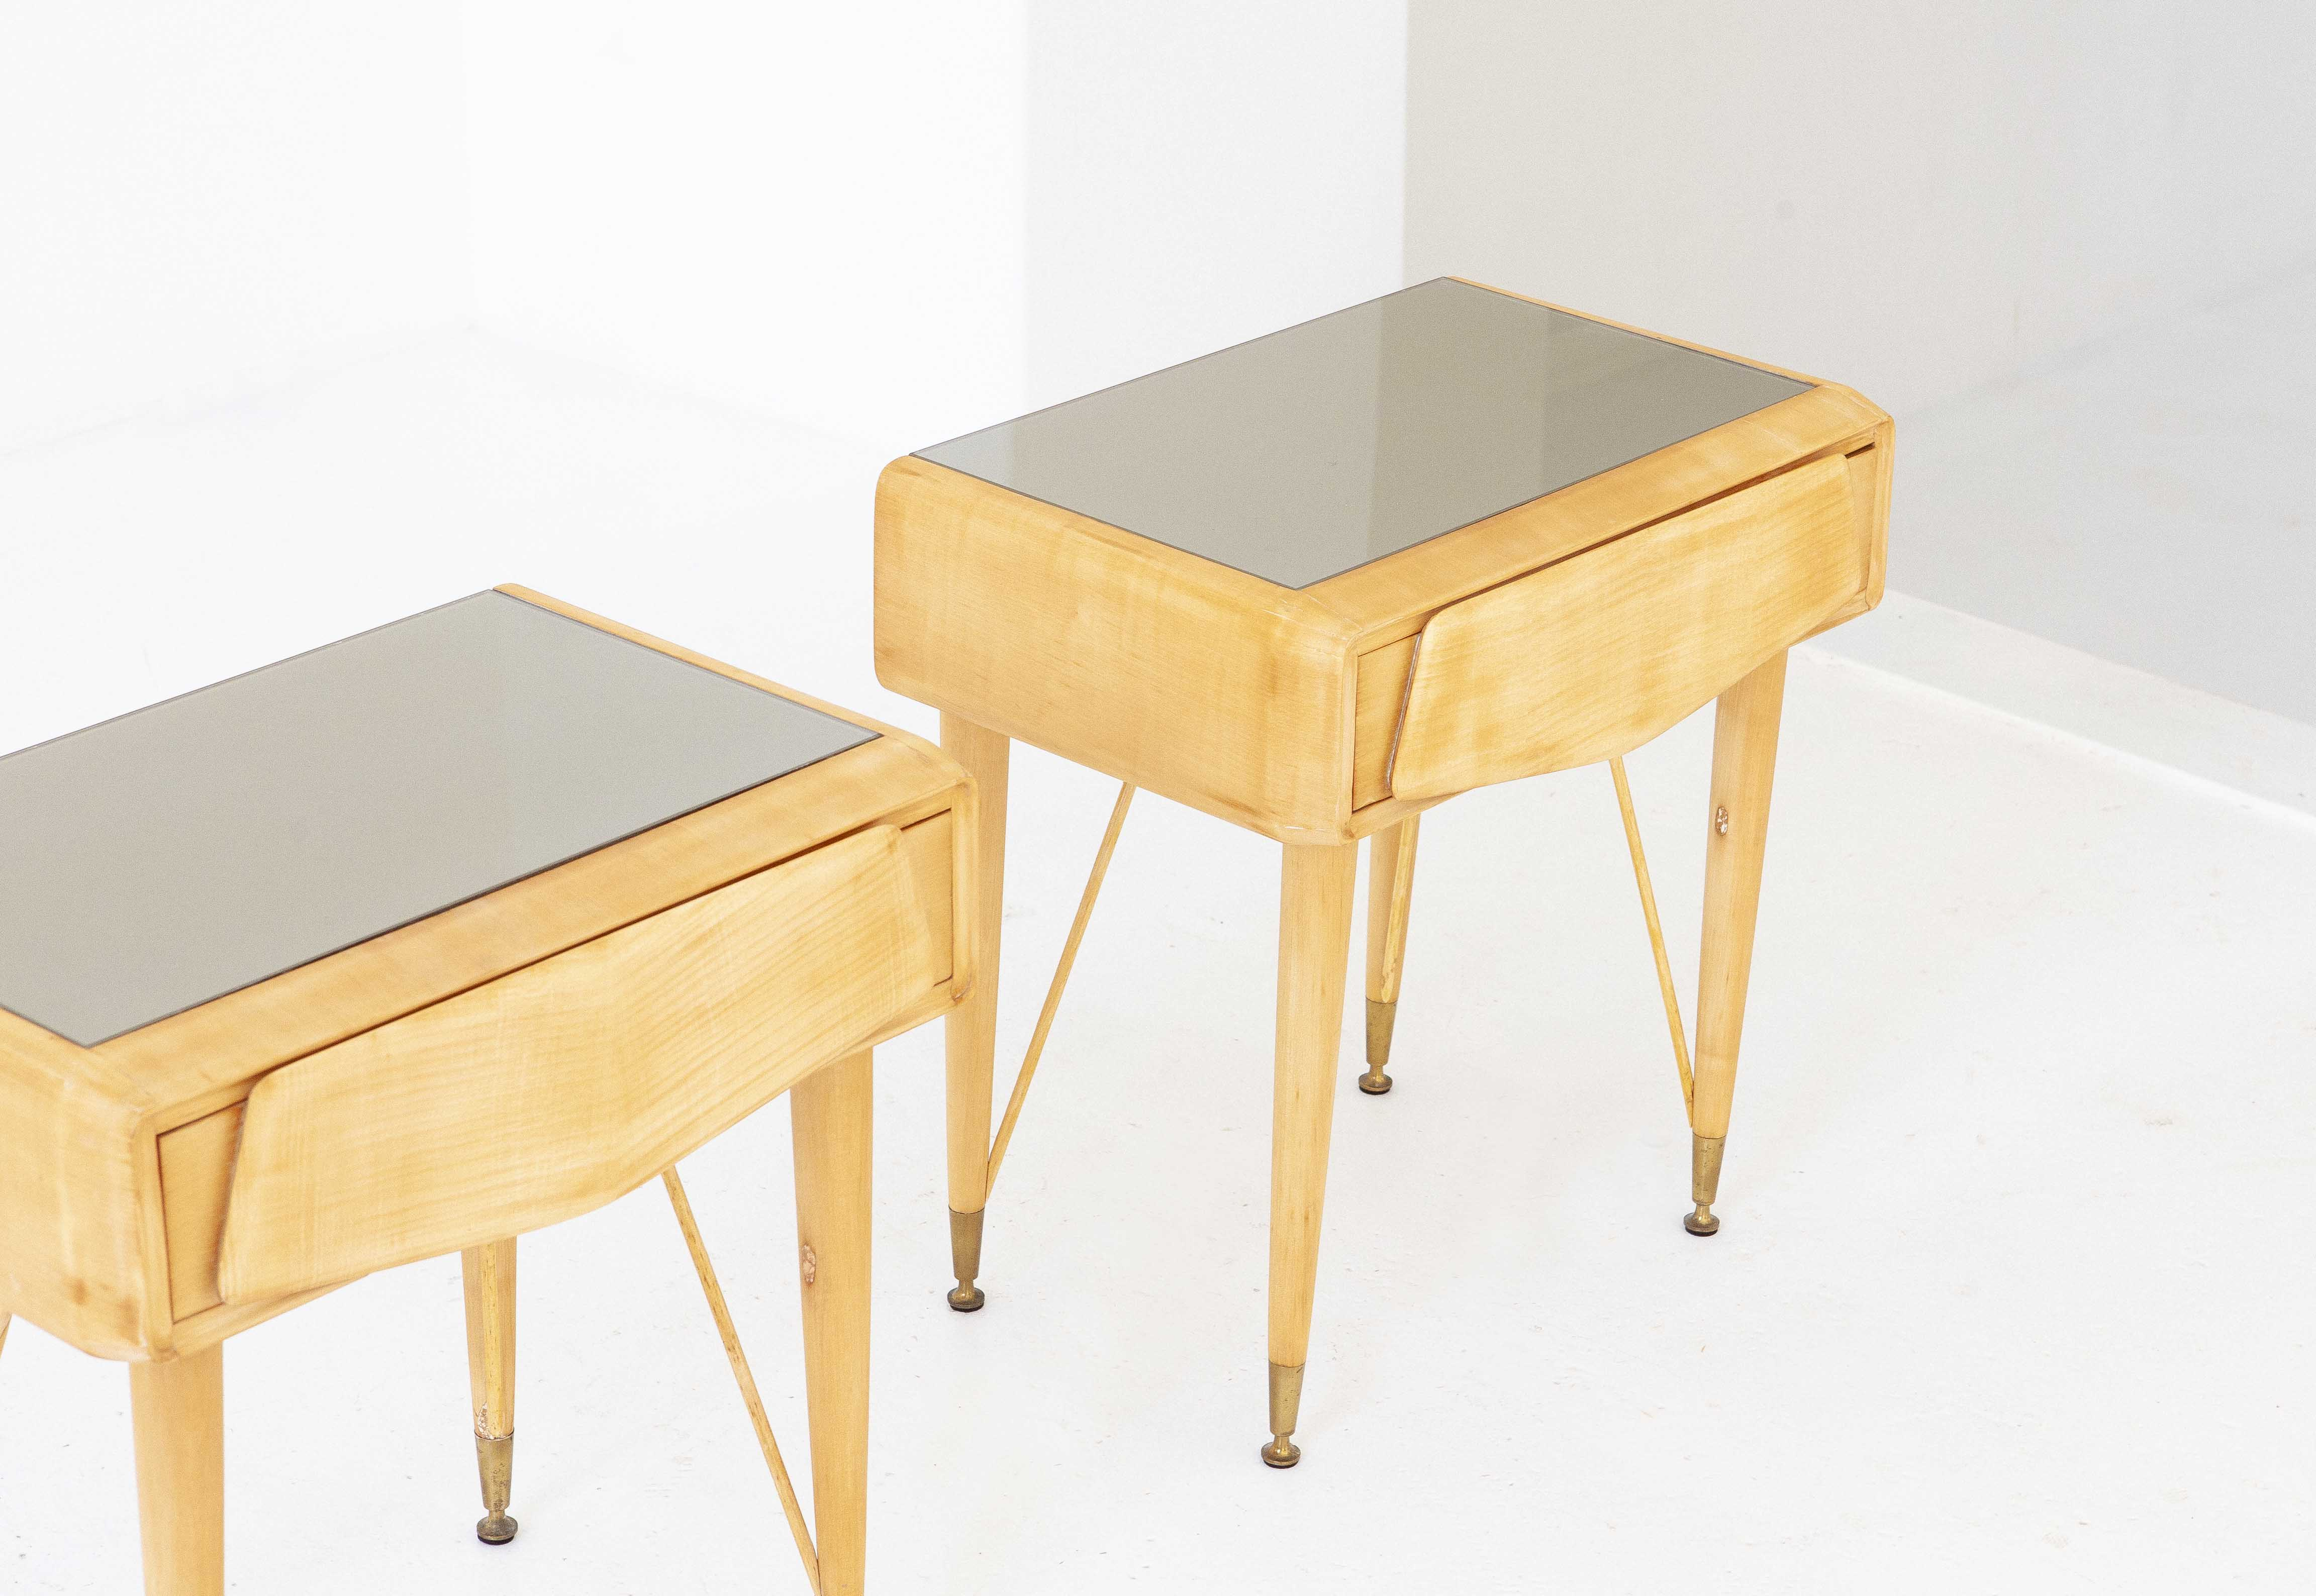 italian-mable-wood-glass-brass-bedside-tables-3-BT77